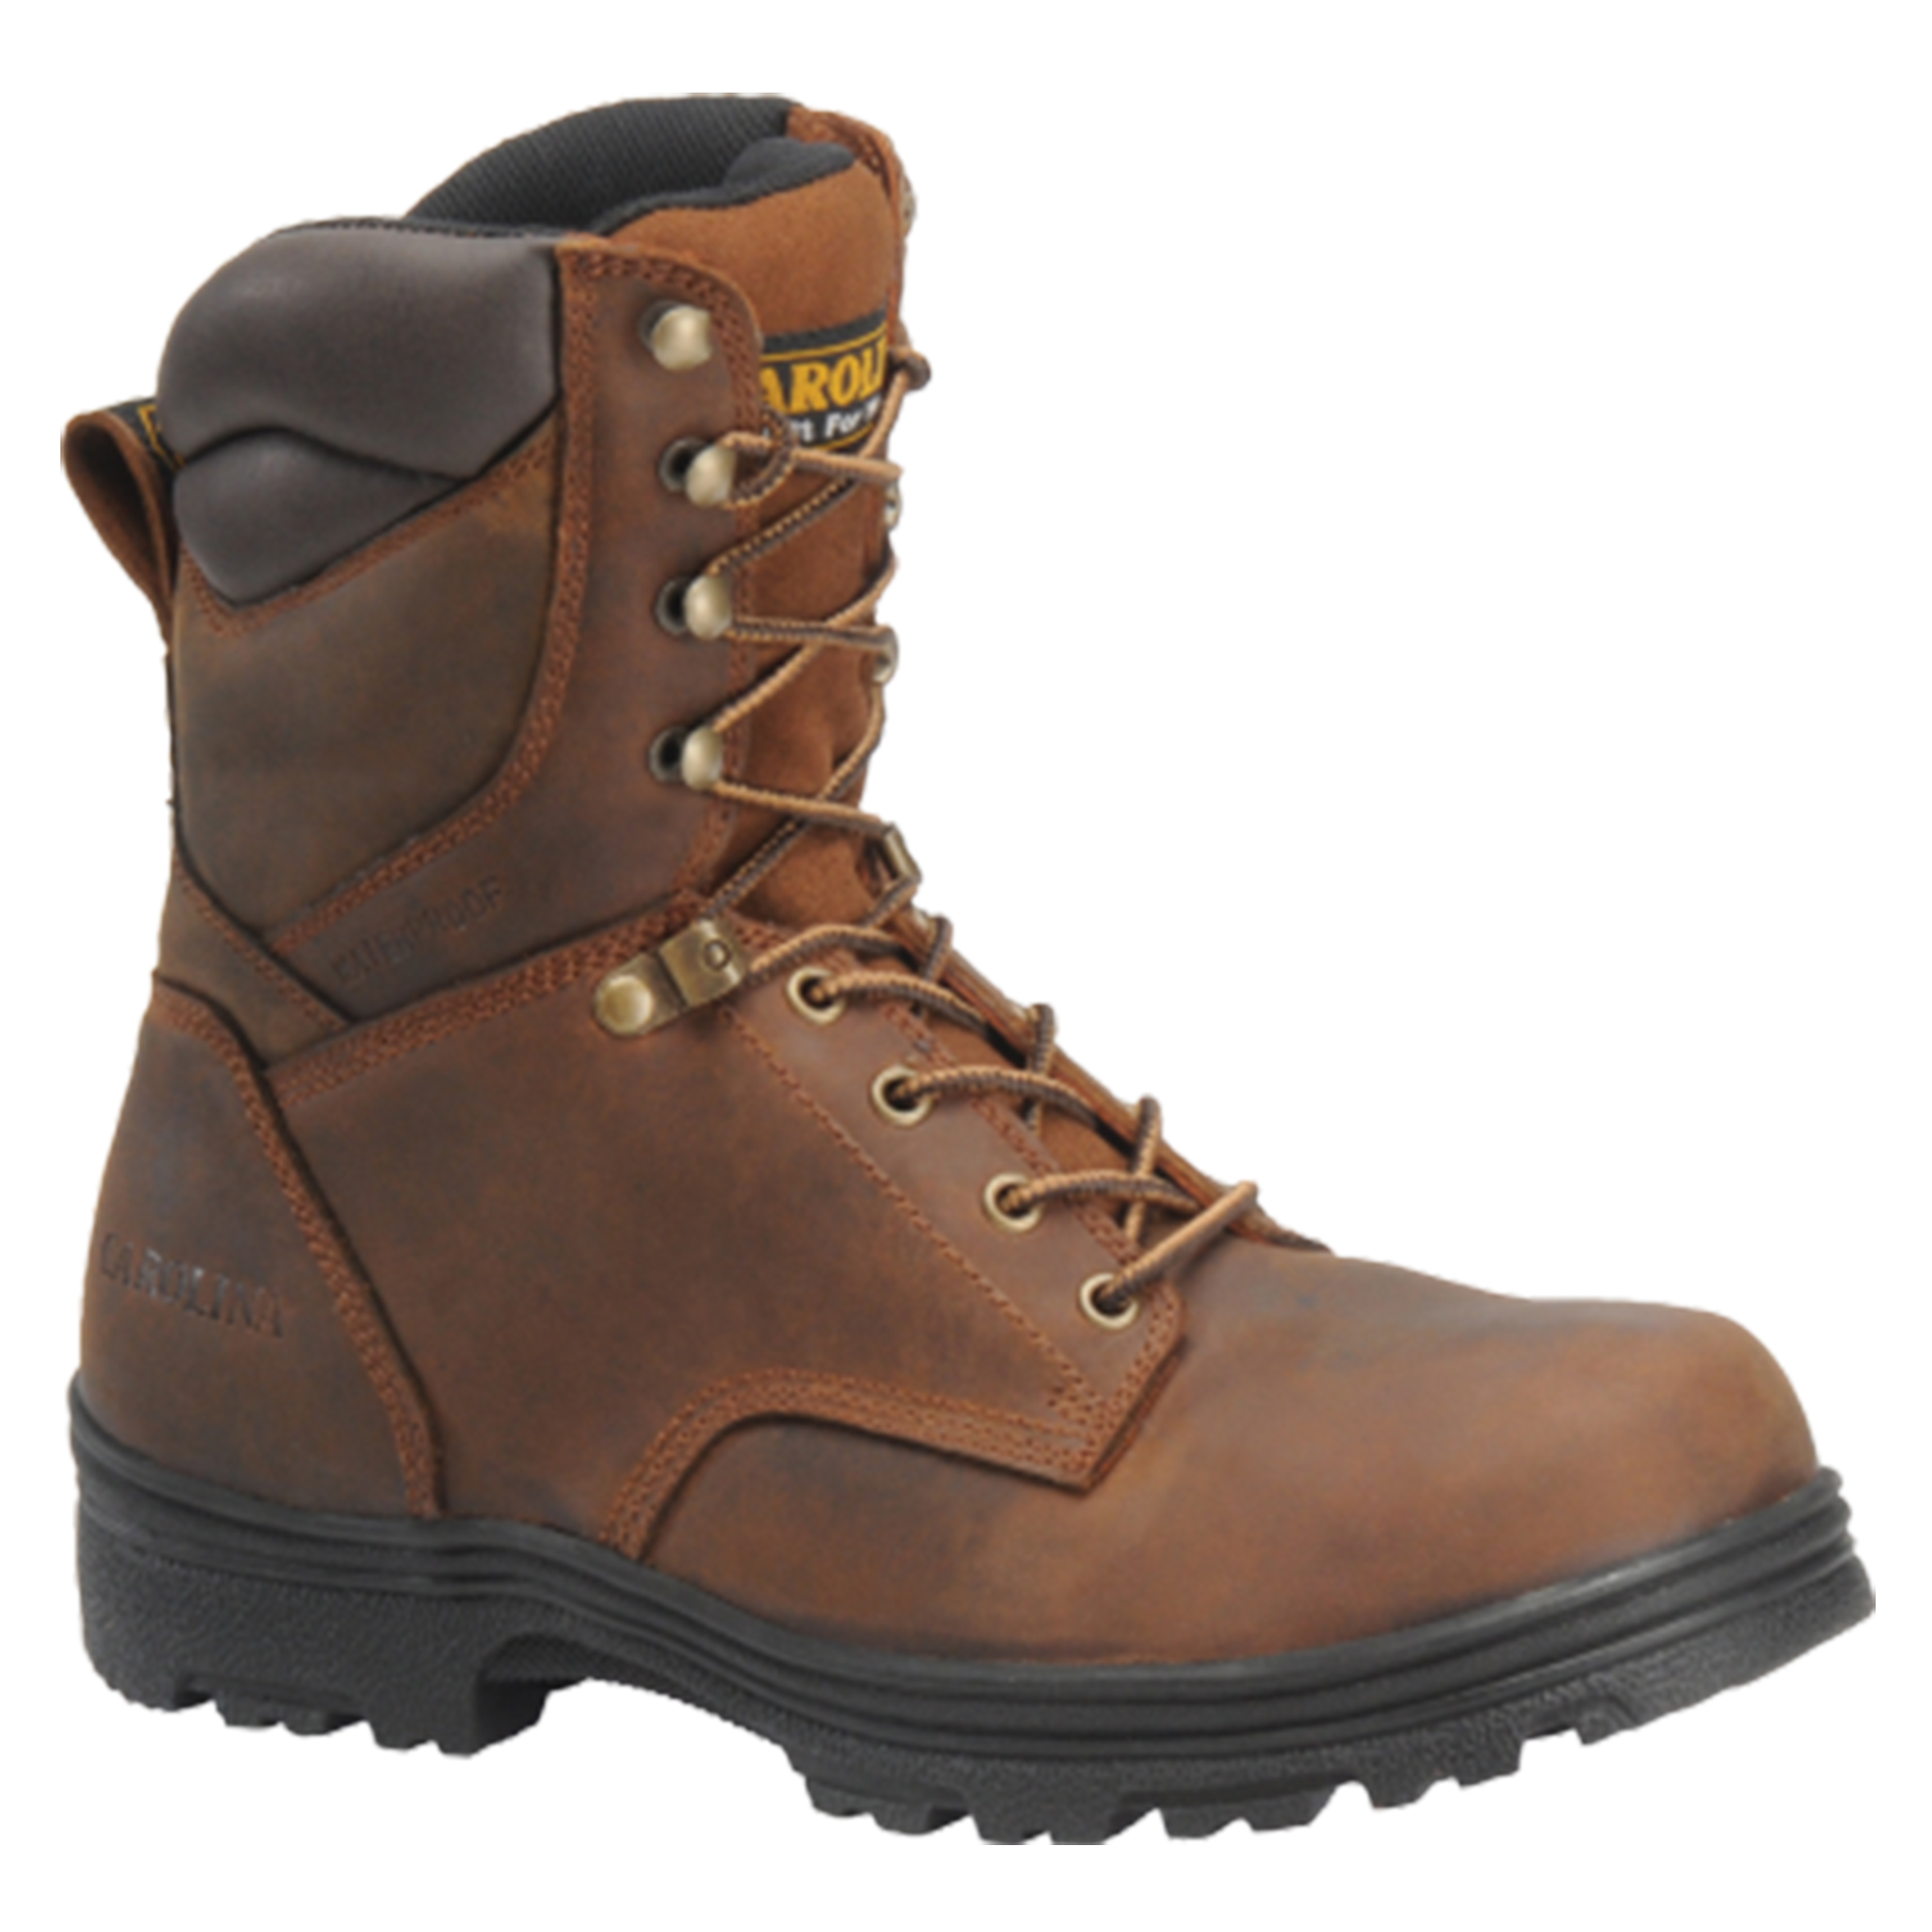 37eb4771625 Carolina Men's 8″ Steel Toe Waterproof Work Boot – CA3524